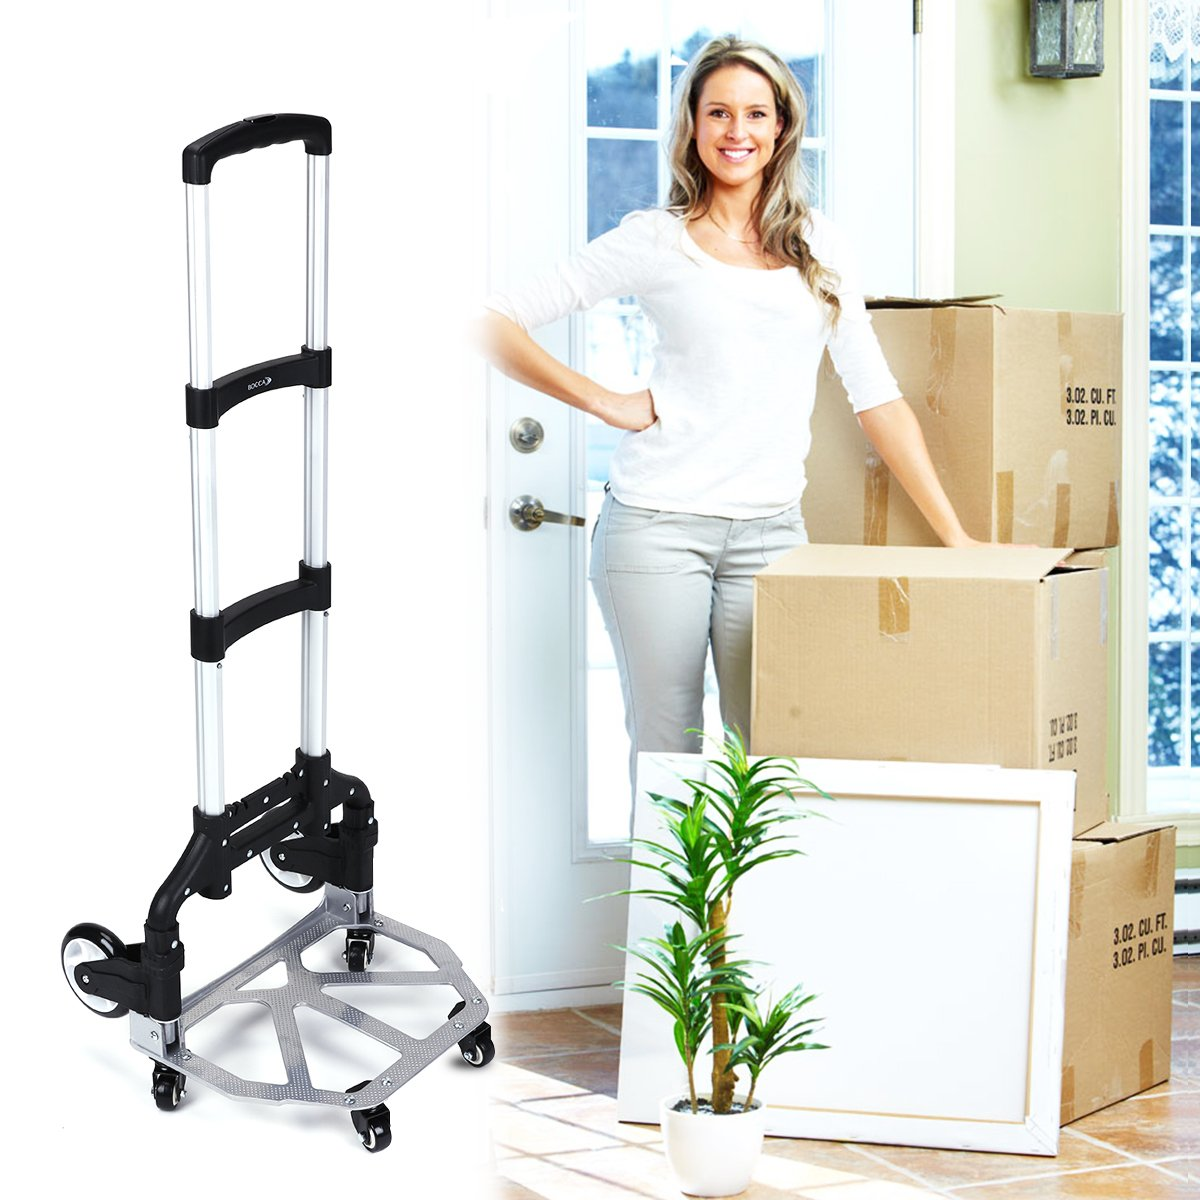 Bocca 6 Wheel Folding Hand Truck, Portable Magna 165 lb Capacity Heavy Duty Aluminum Carts Foldable Height Adjustable Utility Trucks and Dolly